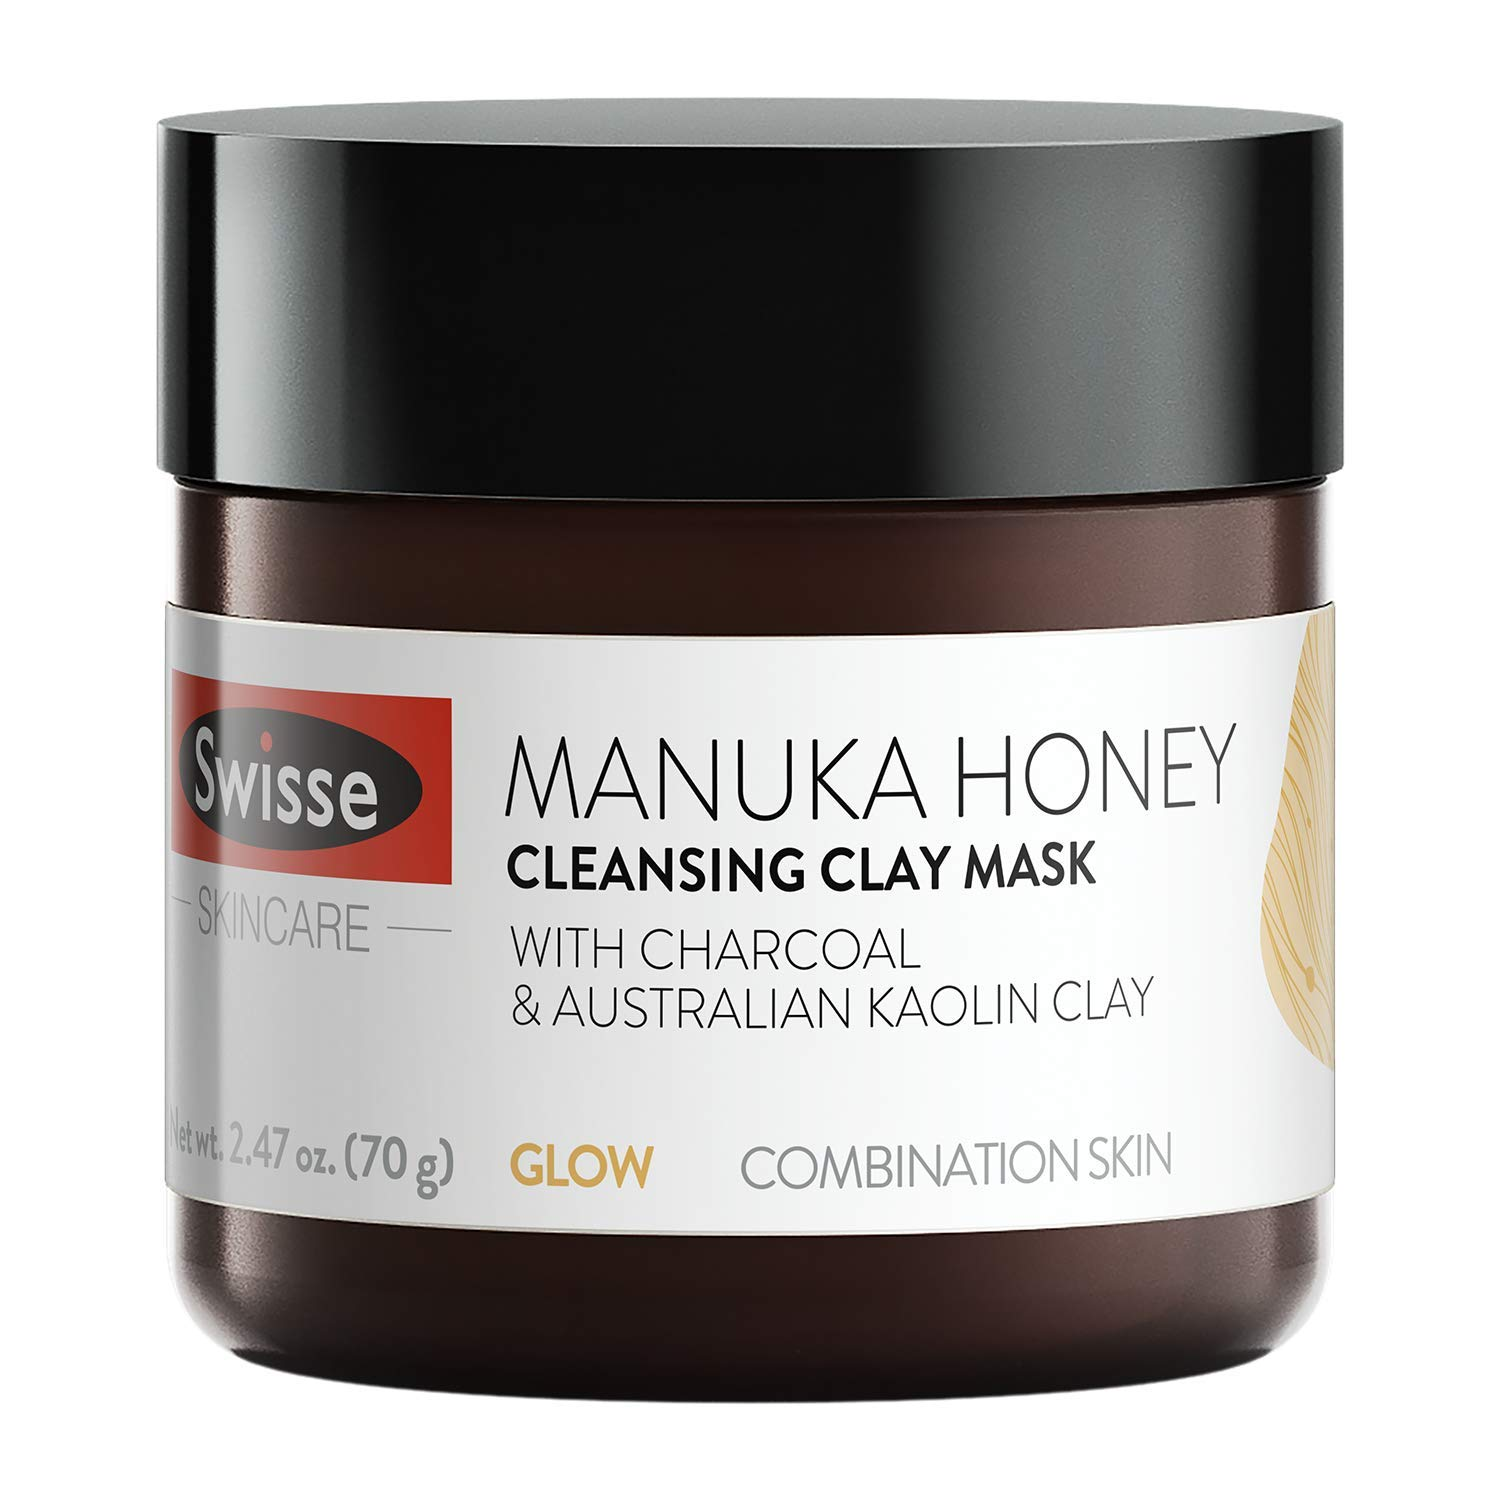 Swisse Natural Skincare Manuka Honey Australian Kaolin Clay Face Mask | For Combination Skin | Cleanses, Purifies, Hydrates | Charcoal, Norwegian Kelp & Red Algae, and Aloe Vera Extract | 2.47 Oz